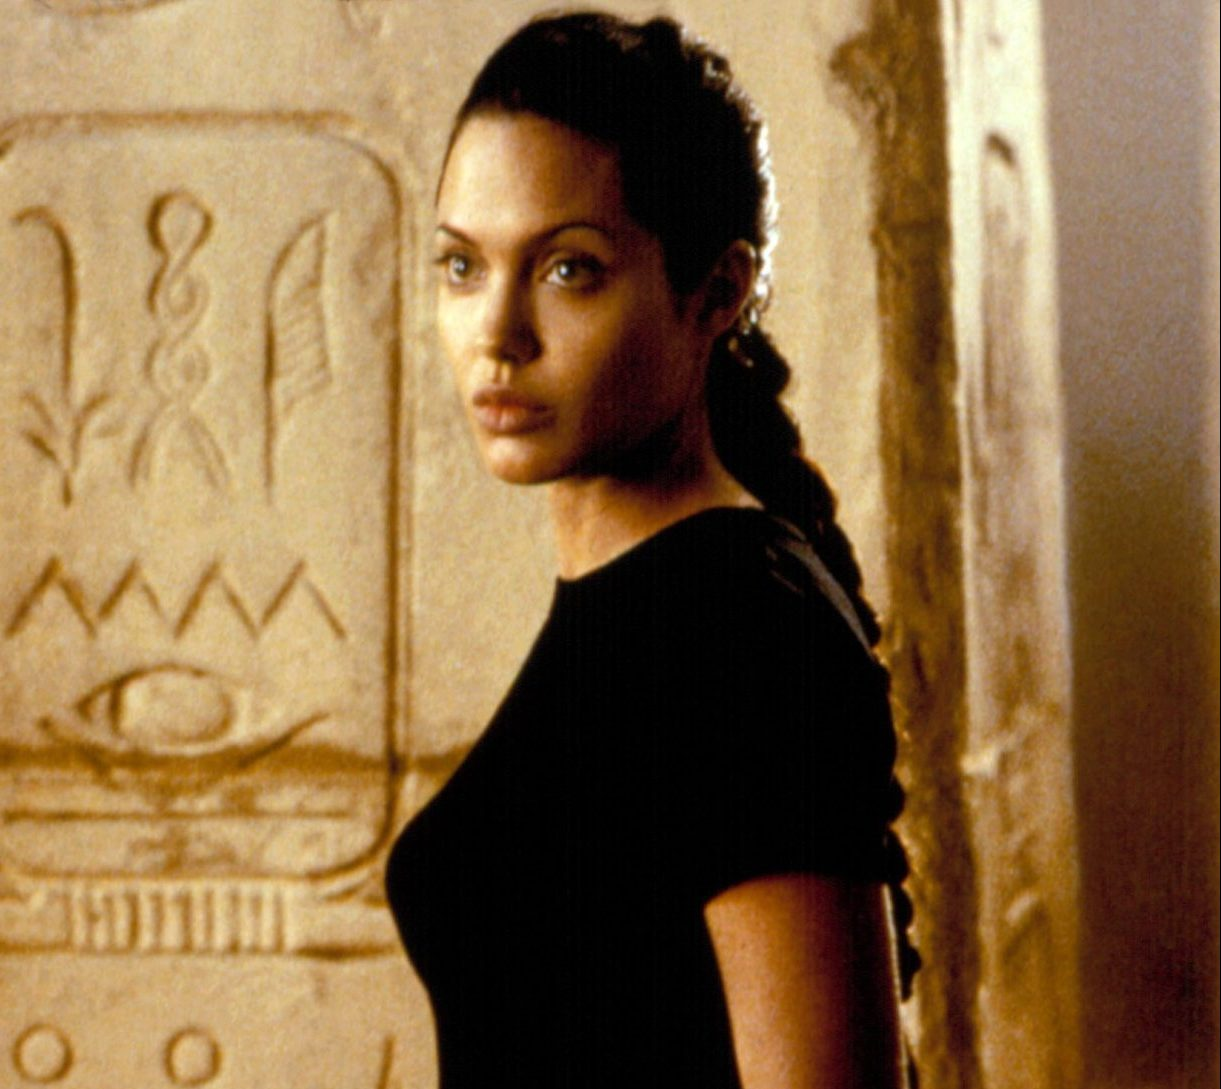 image 18 e1616682960546 20 Fascinating Facts About Angelina Jolie